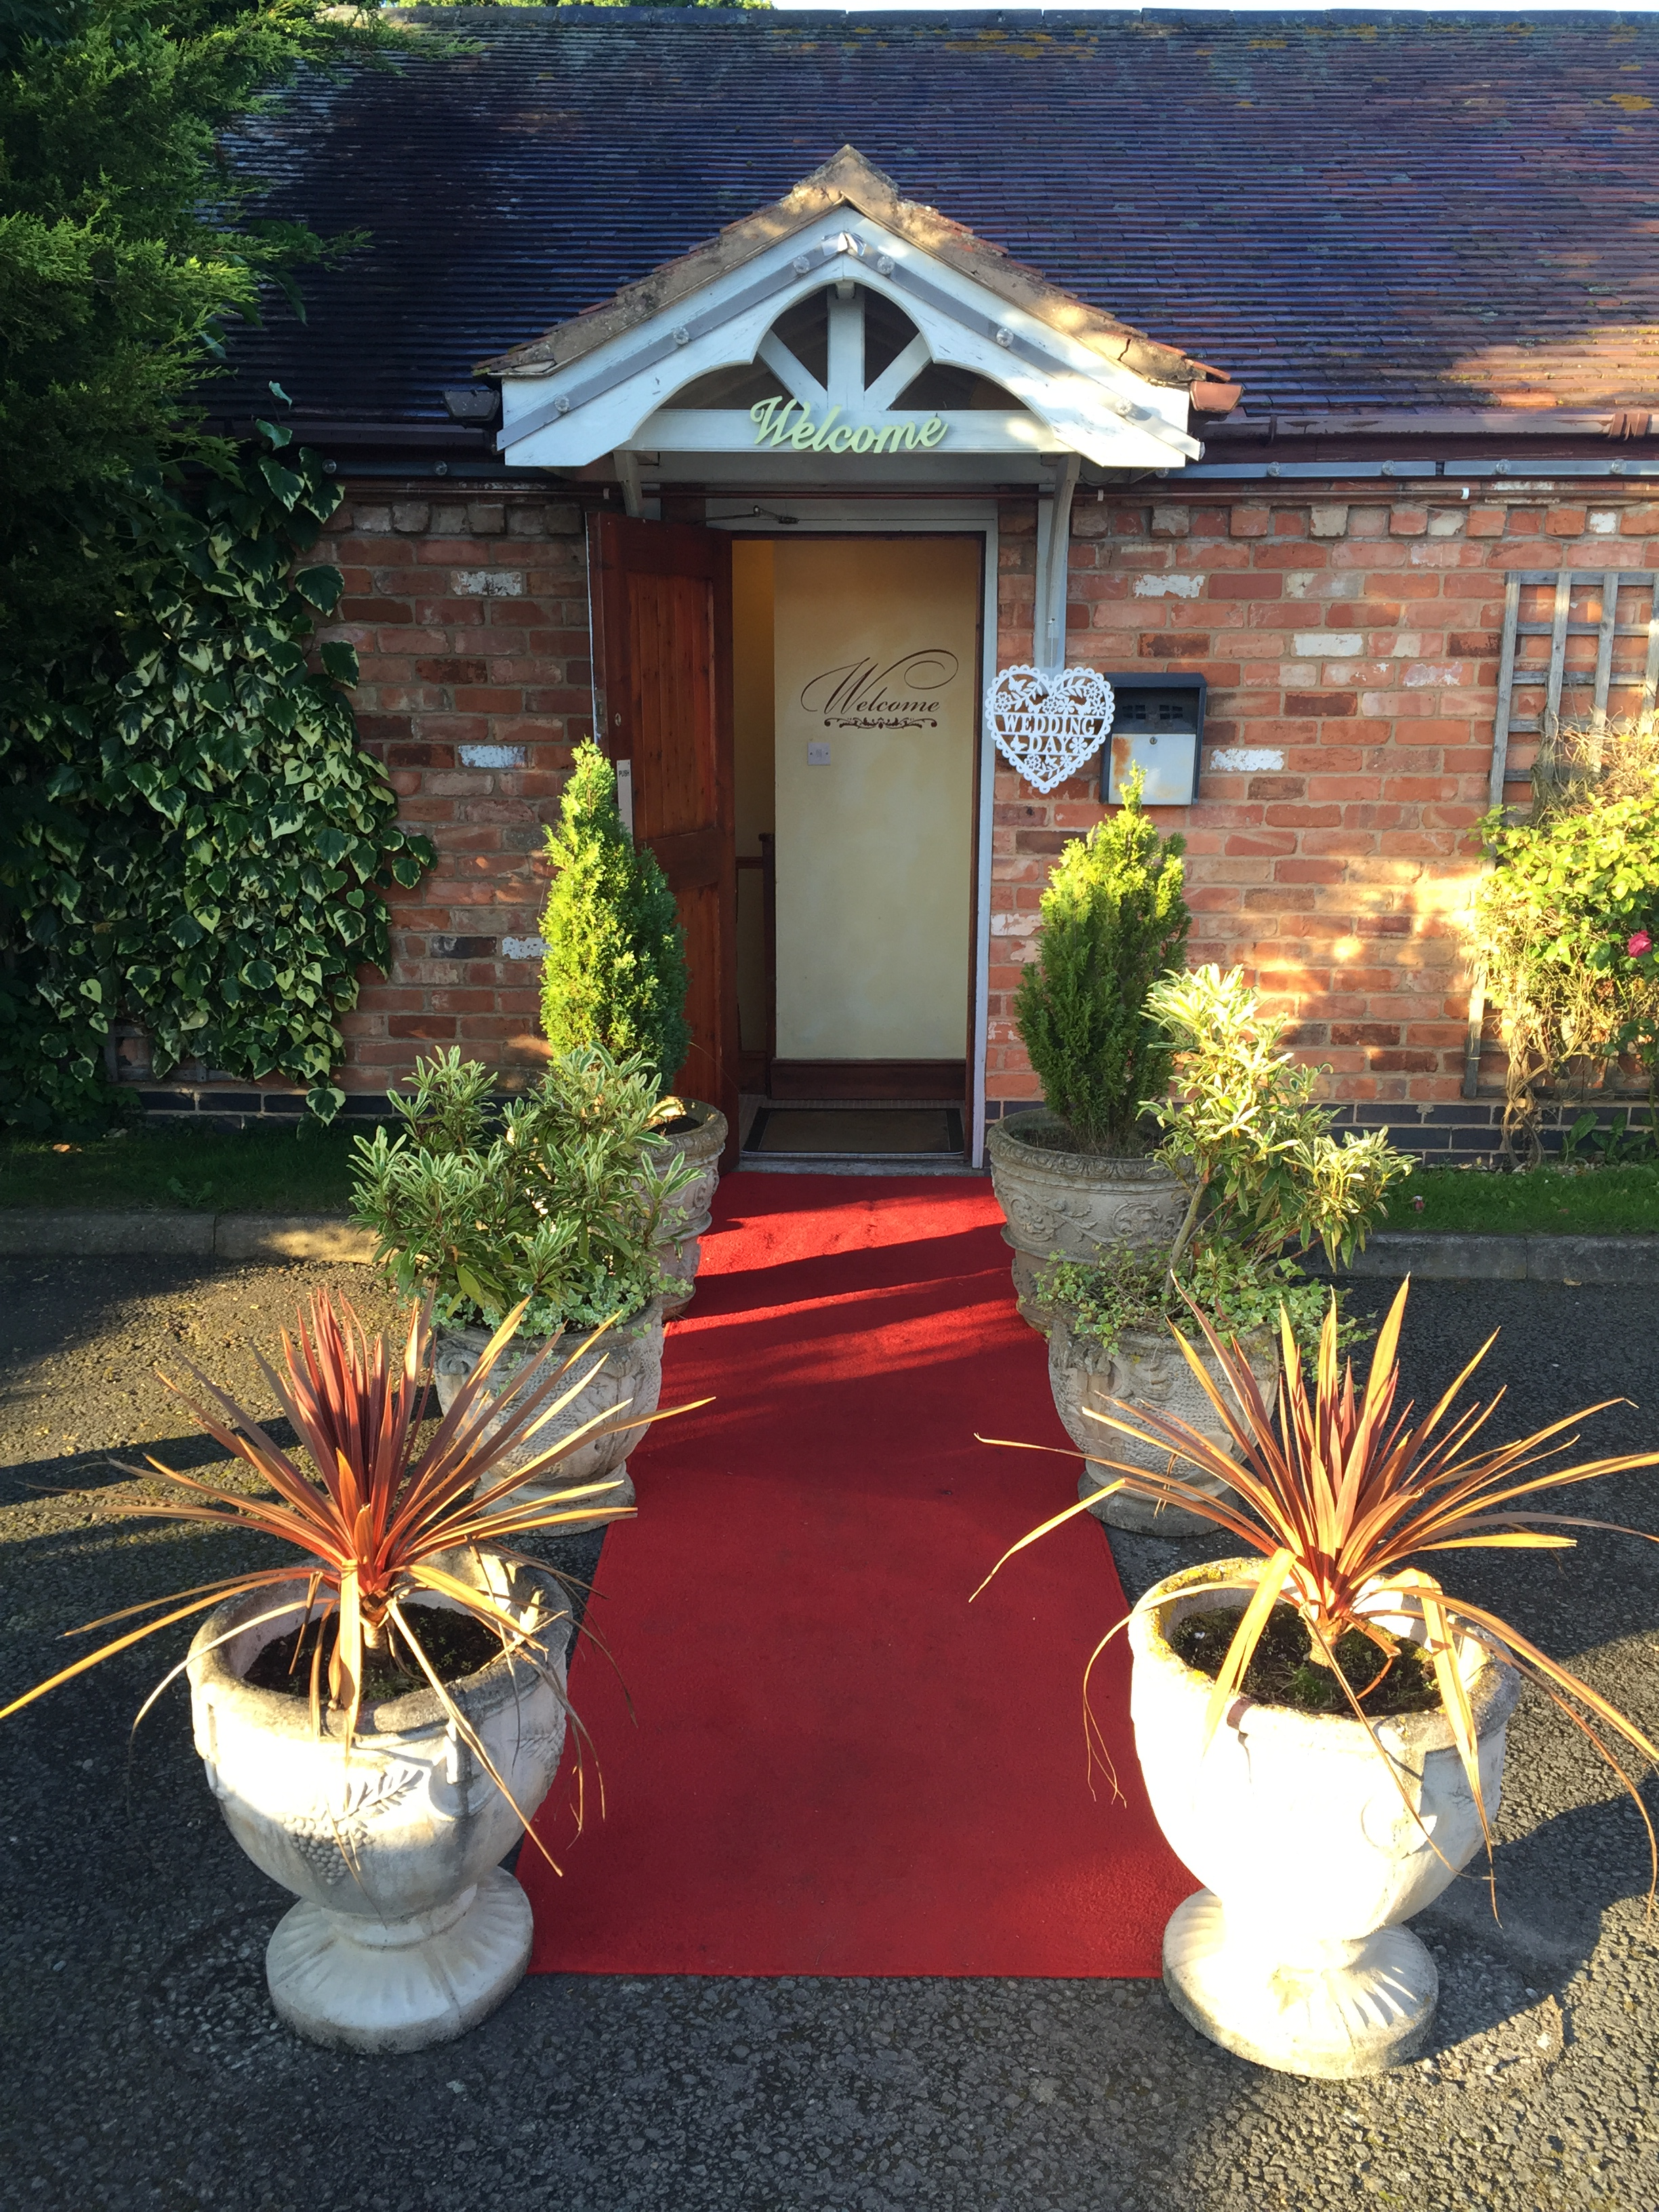 The red carpet treatment at The Royal Arms Hotel, Warwickshire